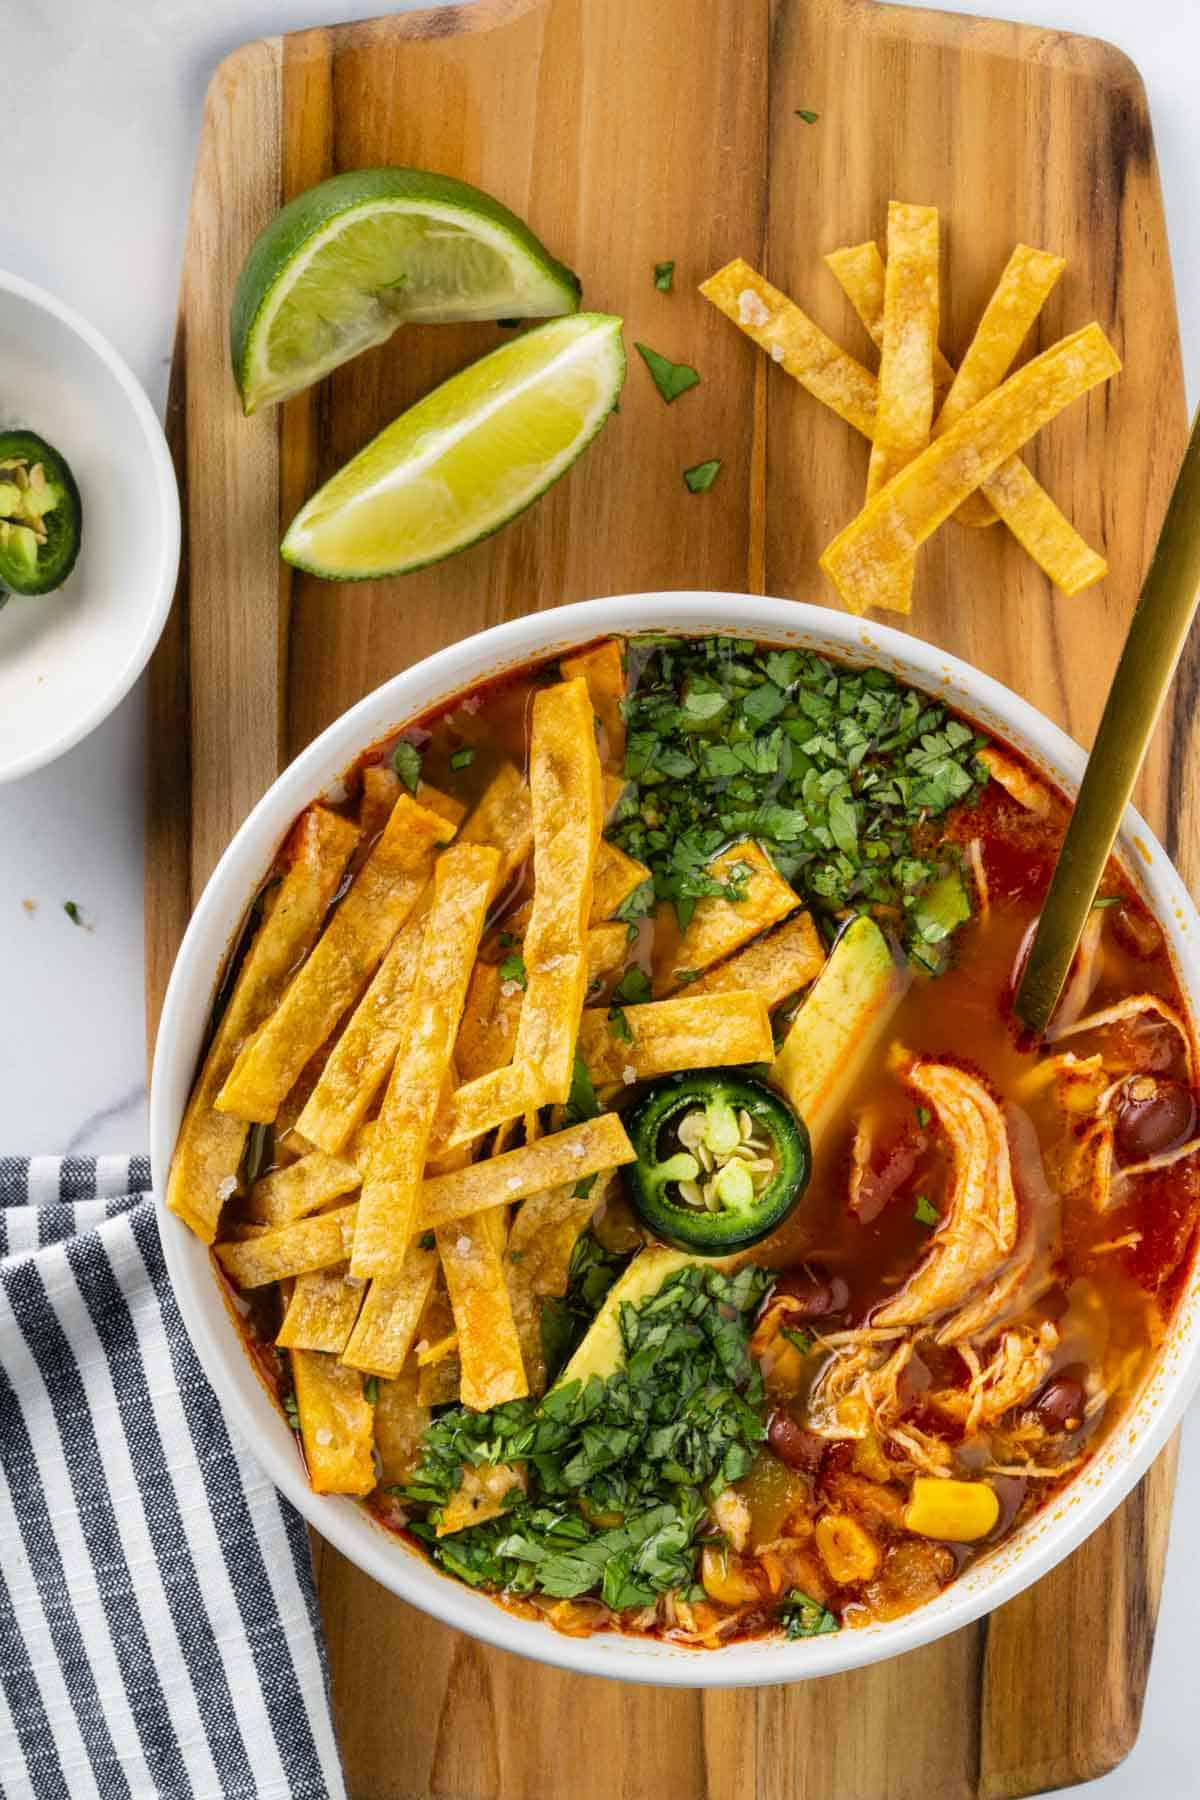 Bowl with chunks of chicken, beans, corn topped with tortilla chips, avocado, jalapeno and cilantro. Bowl is on a cutting board surrounded by sliced jalapeno peppers, lime wedges and tortilla chips.